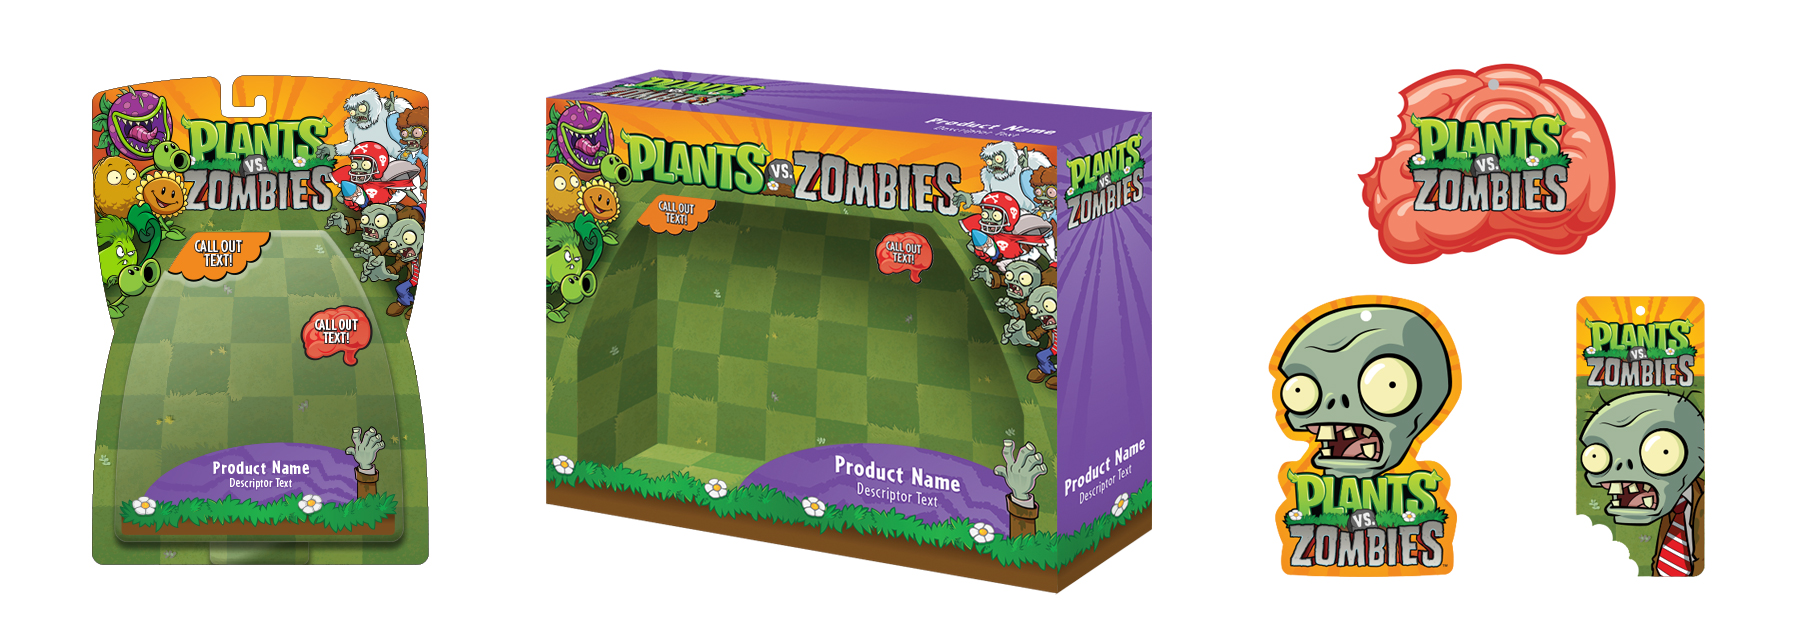 Plants vs. Zombies Style Guide Design - Thumb 9